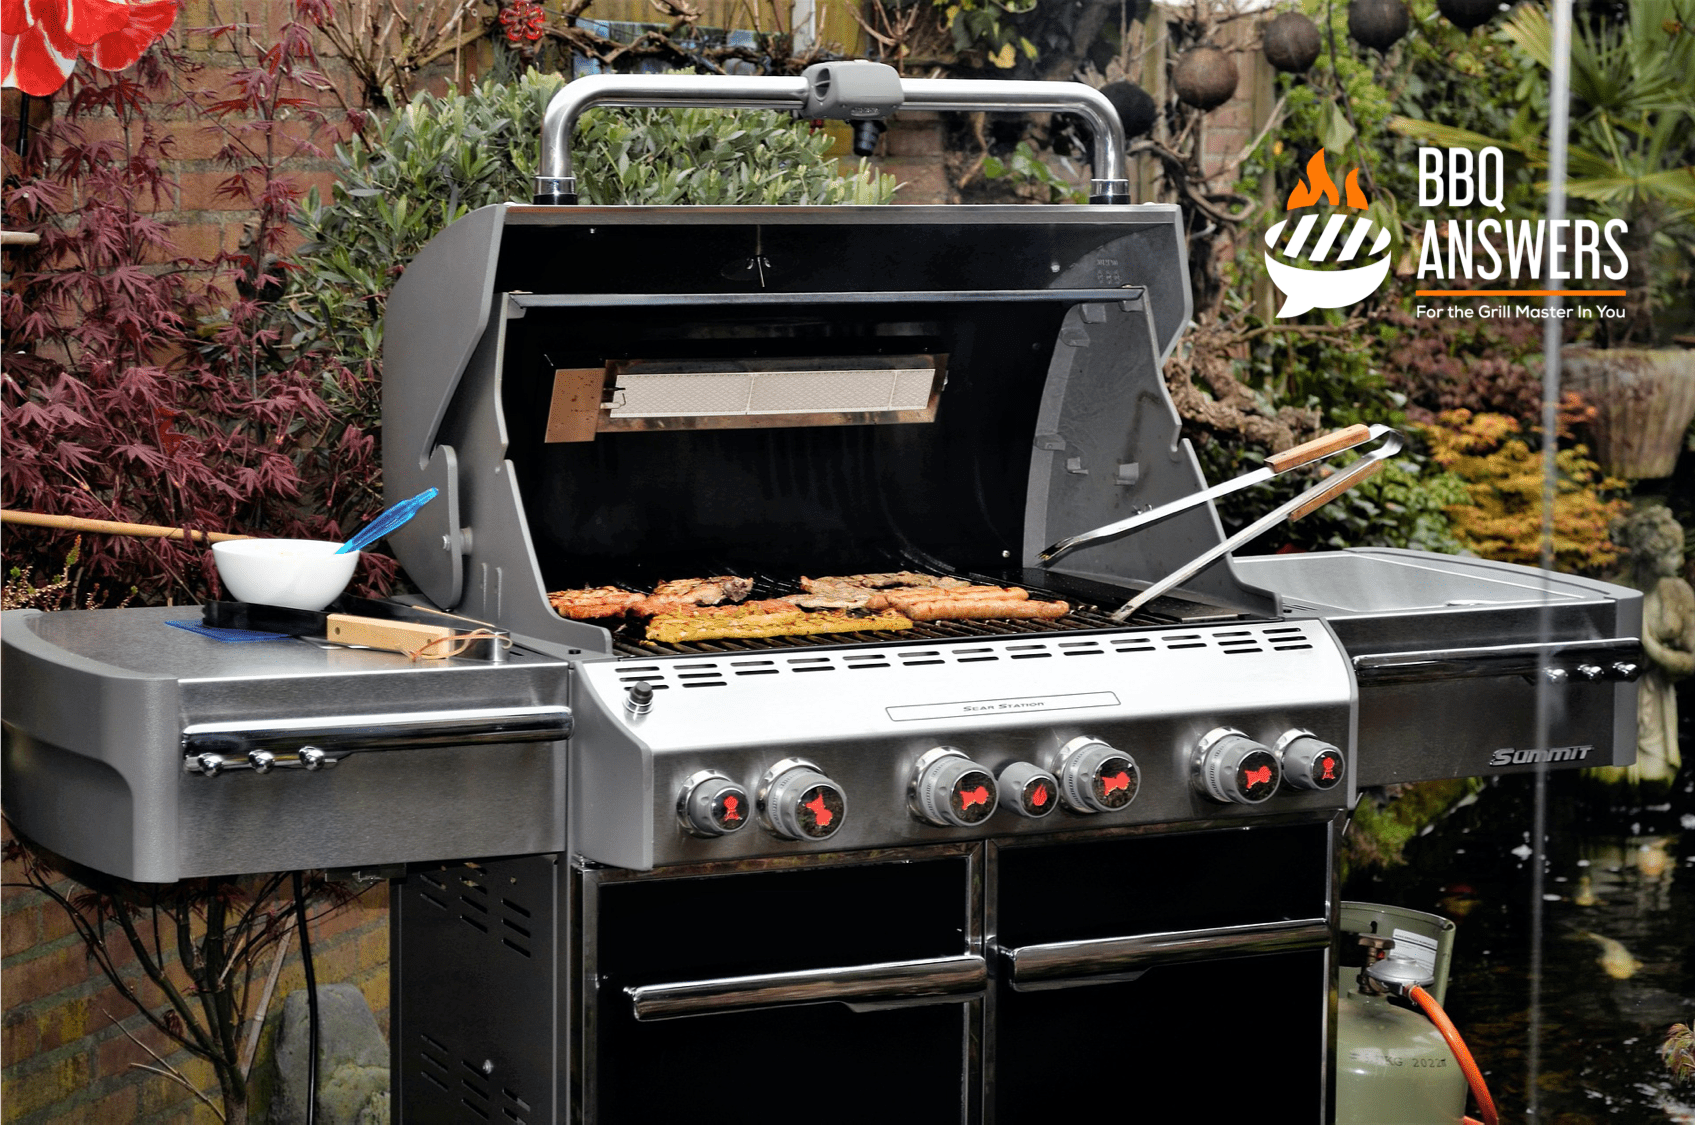 Gas Grill   Gas Grilling Equipment   BBQanswers